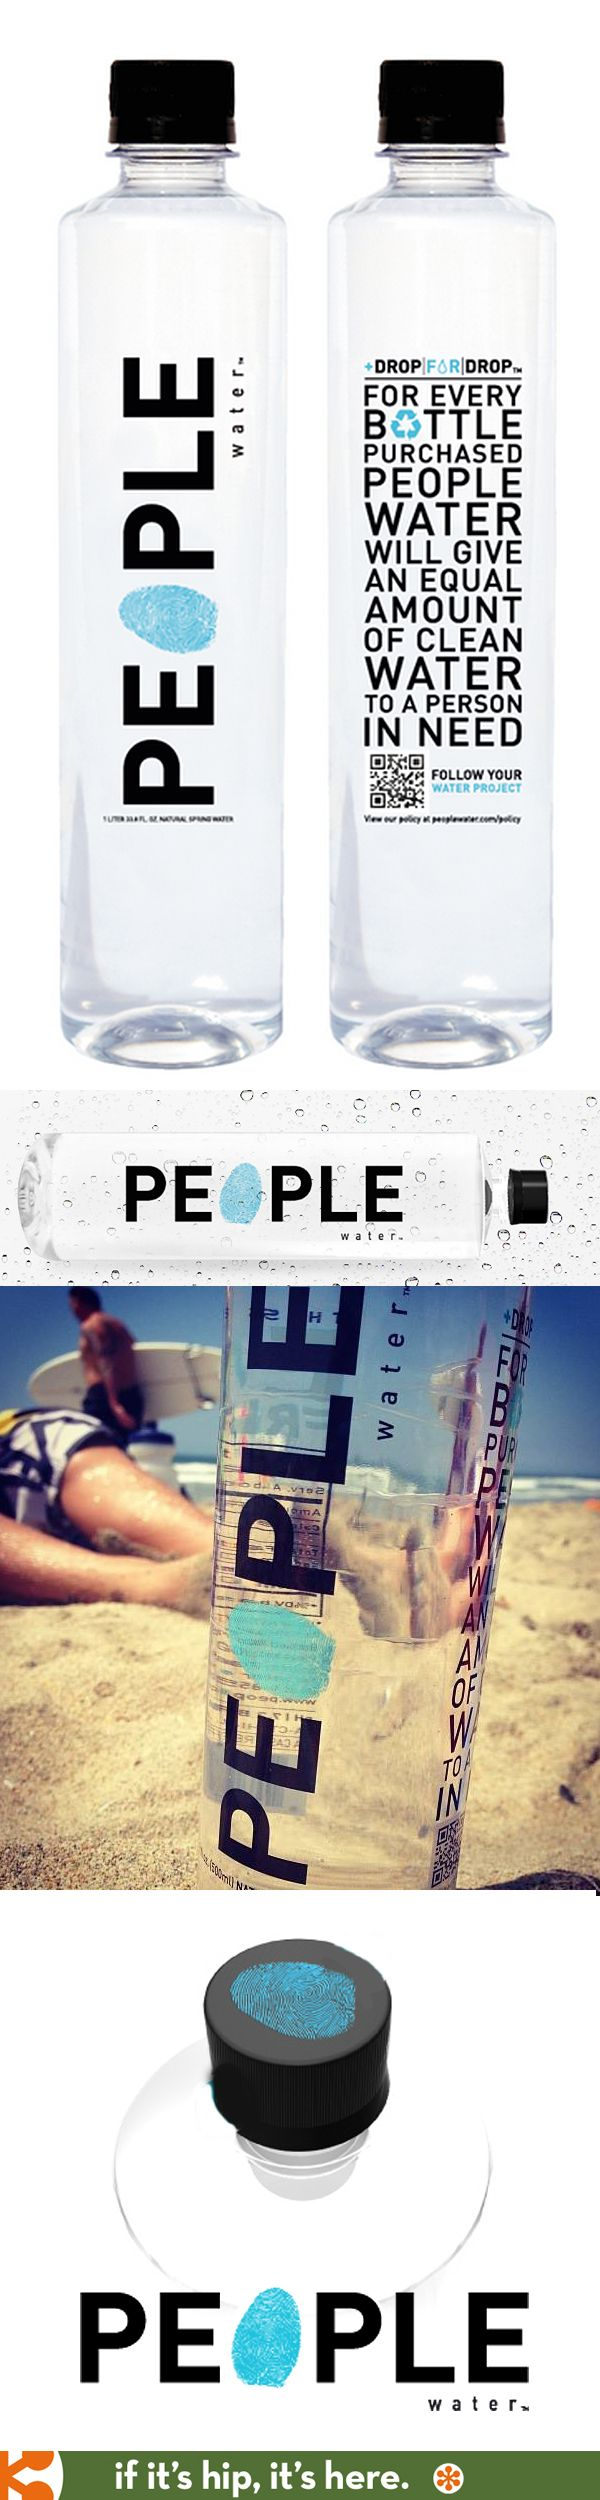 People Water in a nice bottle design complete with thumbprint on the cap. PD